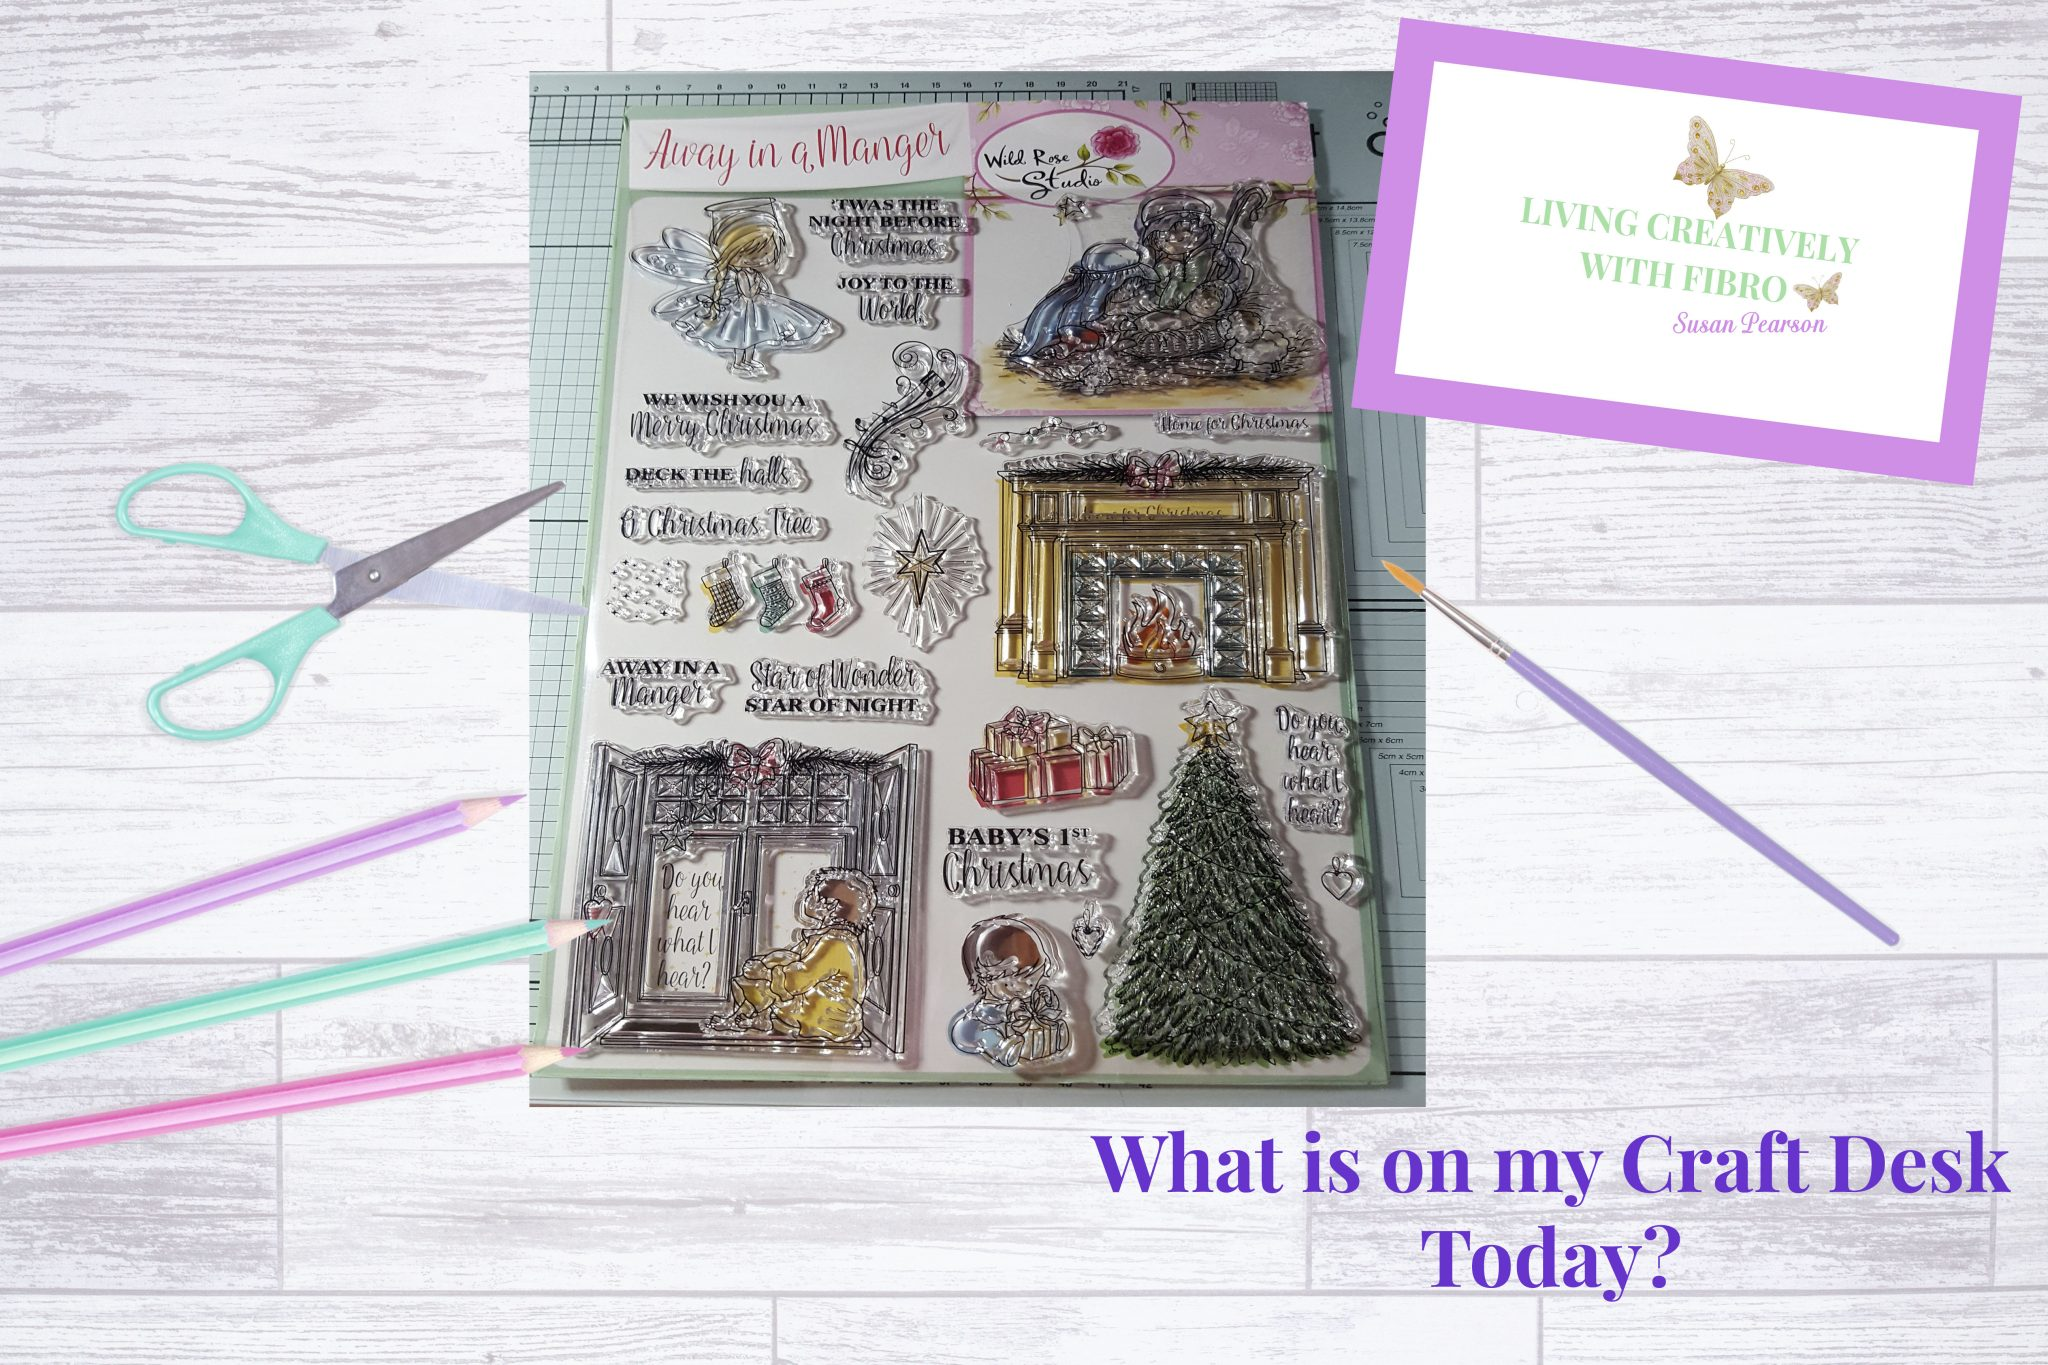 Living Creatively with Fibro | Away in a Manger Craft Desk